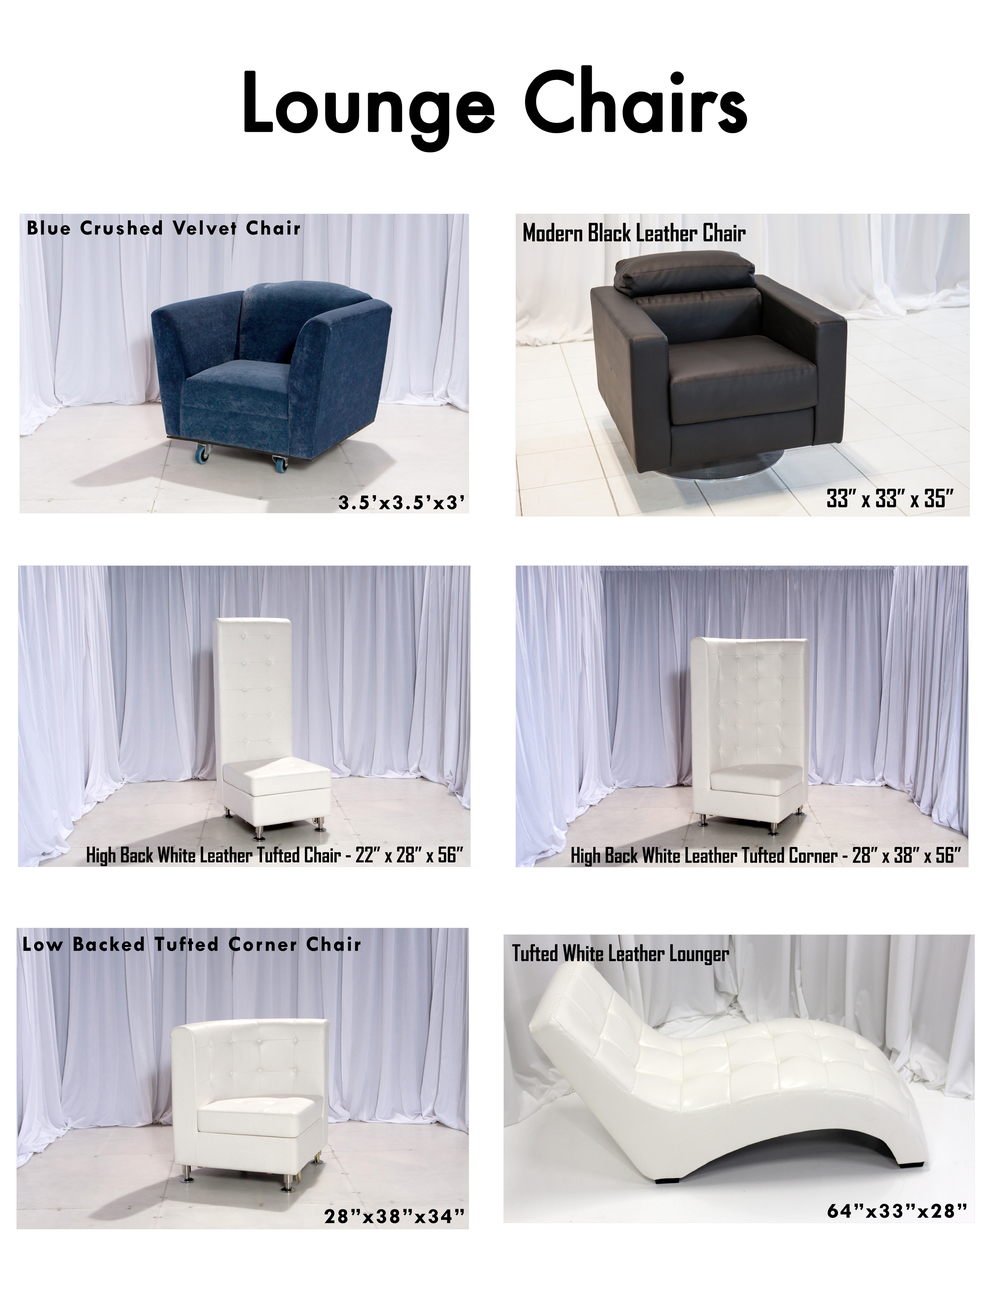 P50_Lounge Chairs.jpg